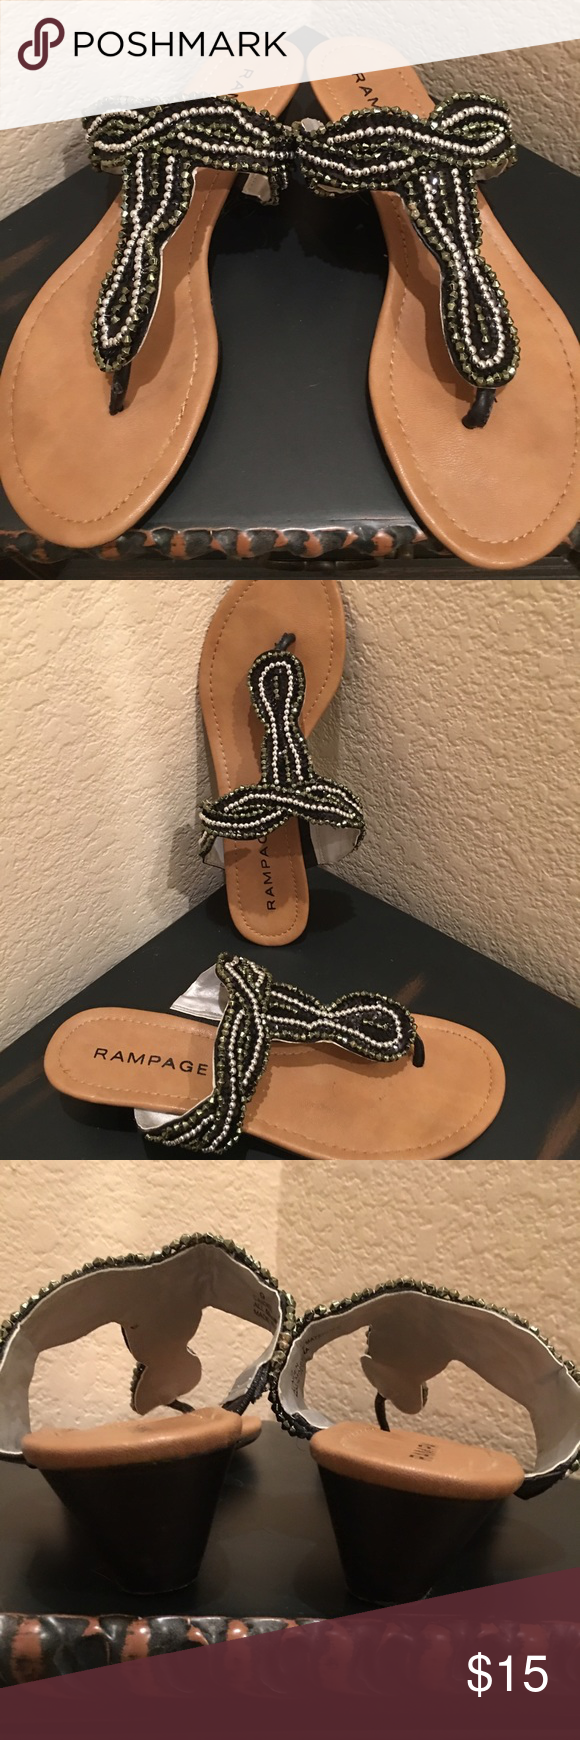 Flash Sale👠 Rampage Black Sequins and Beads Rampage Black Sequins and Beaded Sandals. Excellent Condition Rampage Shoes Sandals